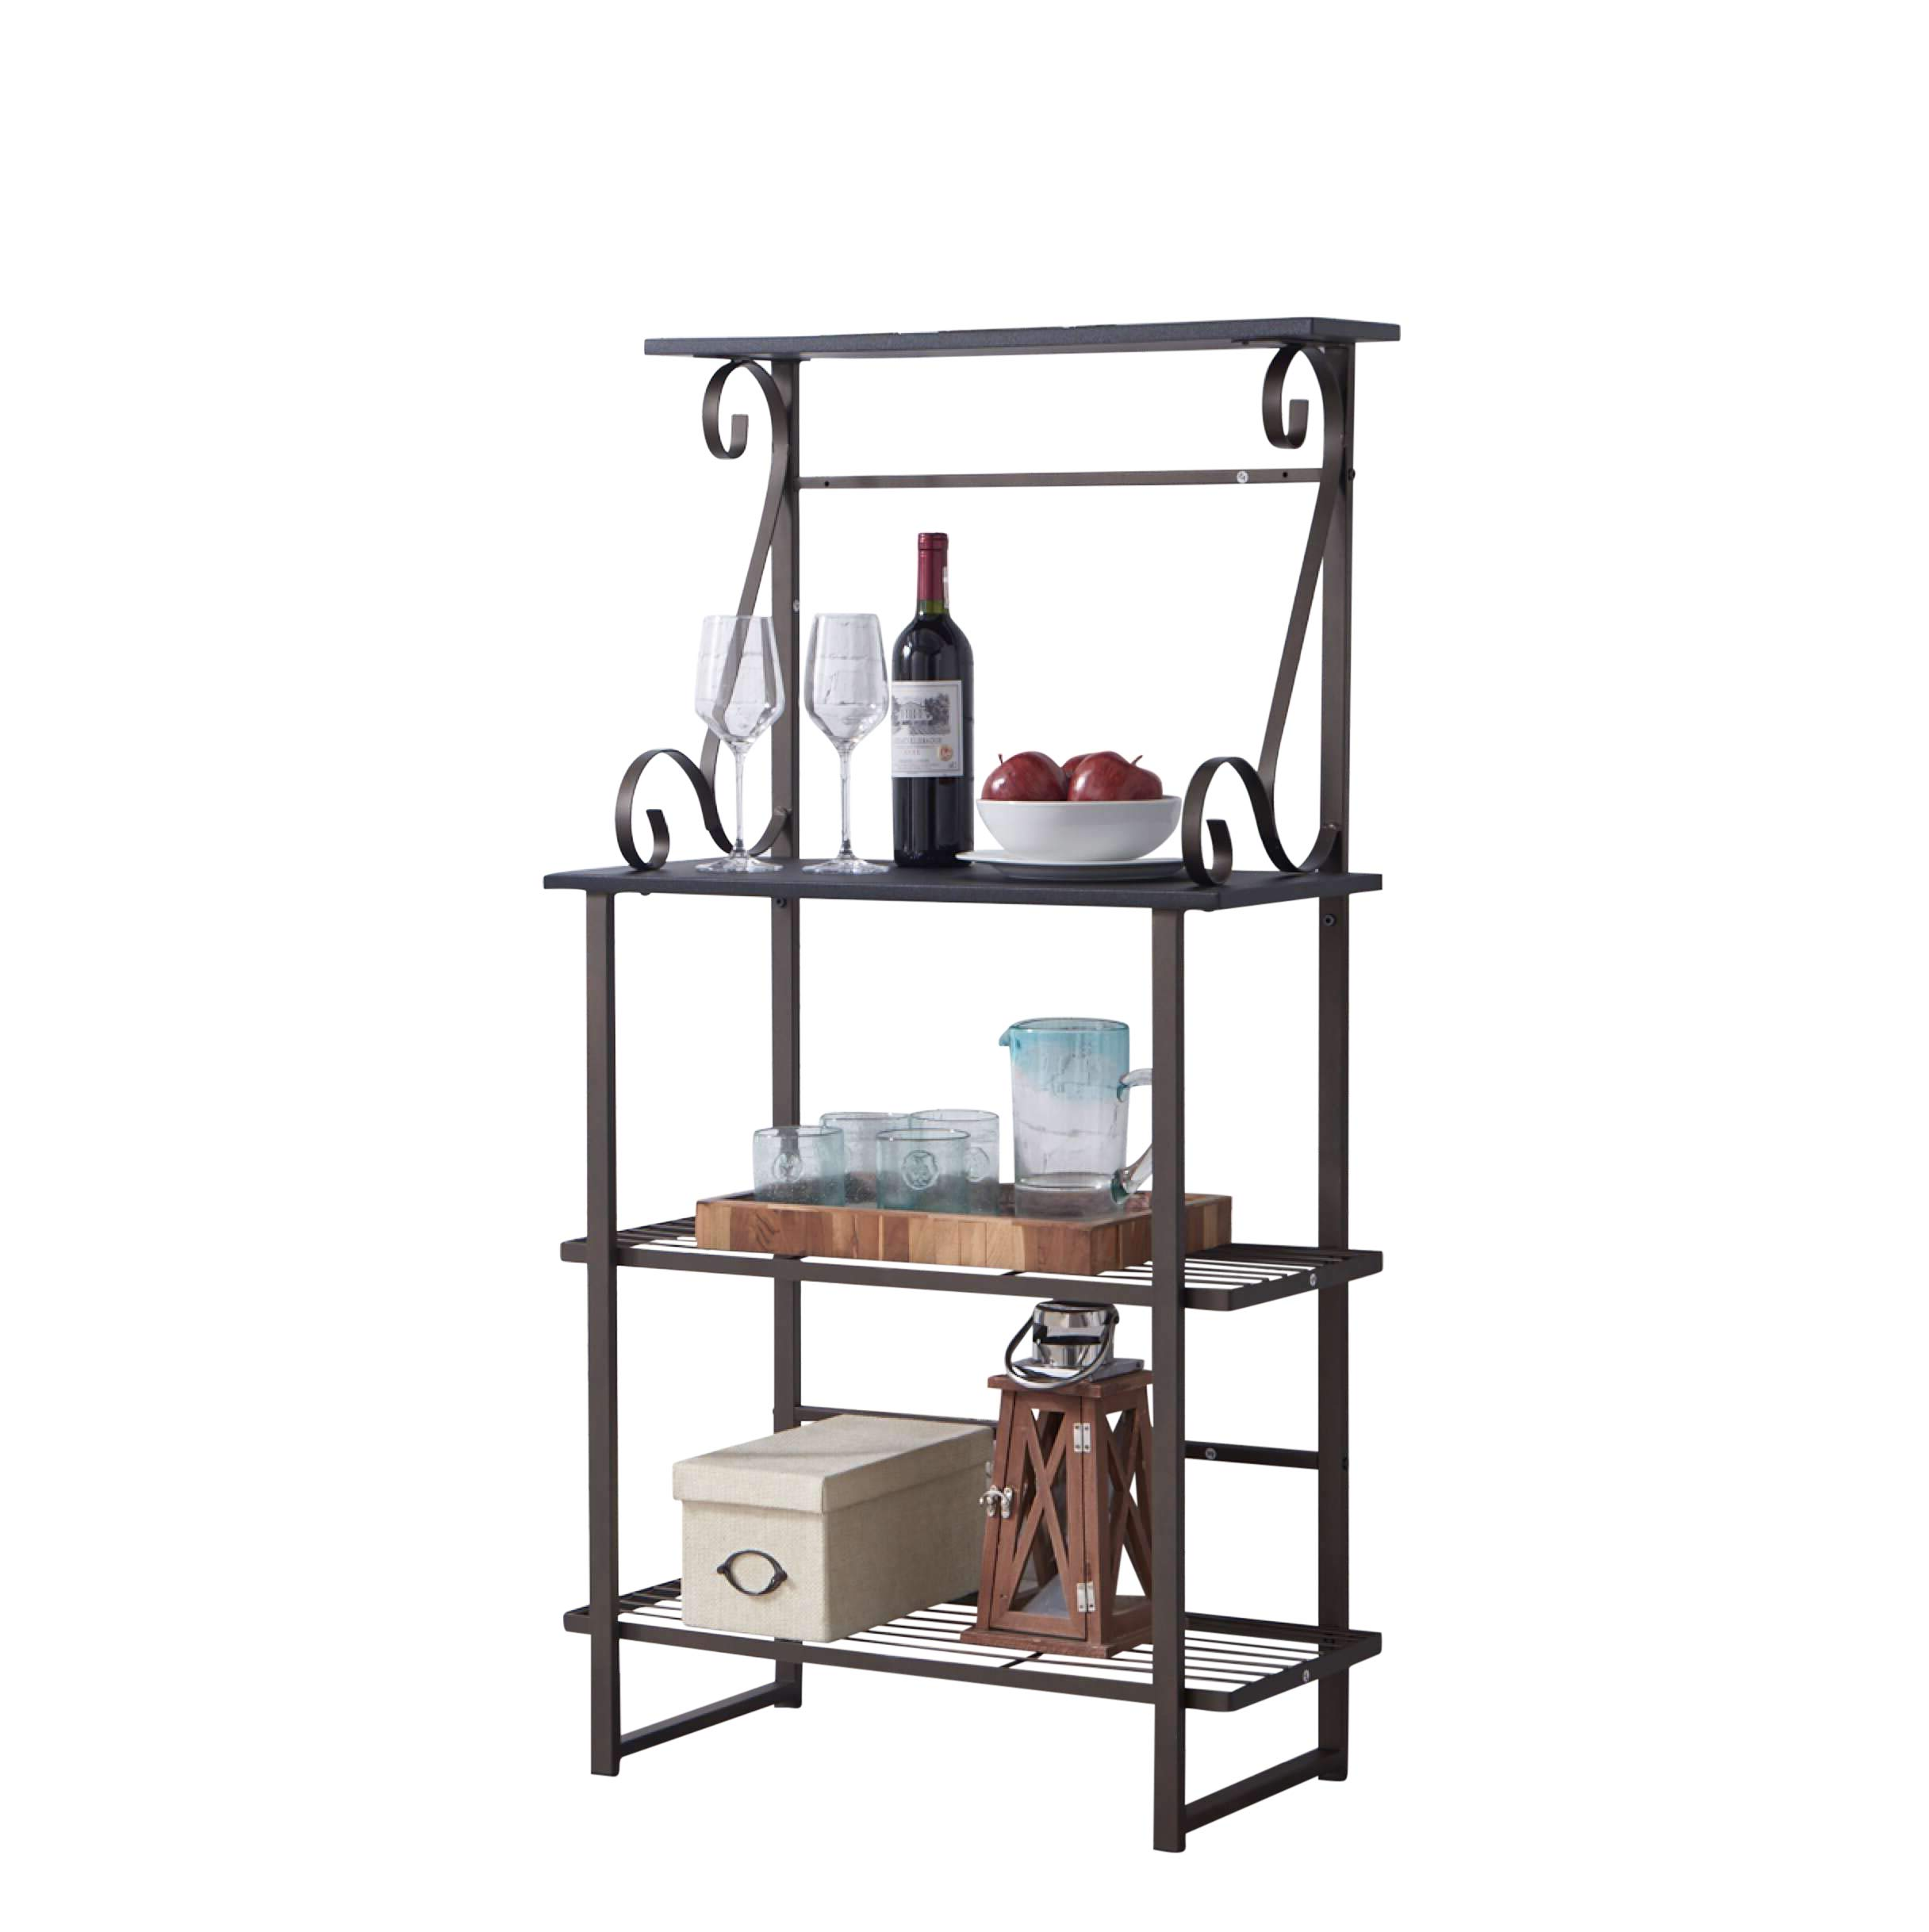 Kings Brand Furniture - Covington Metal Kitchen Baker's Rack, Pewter by Kings Brand Furniture (Image #5)